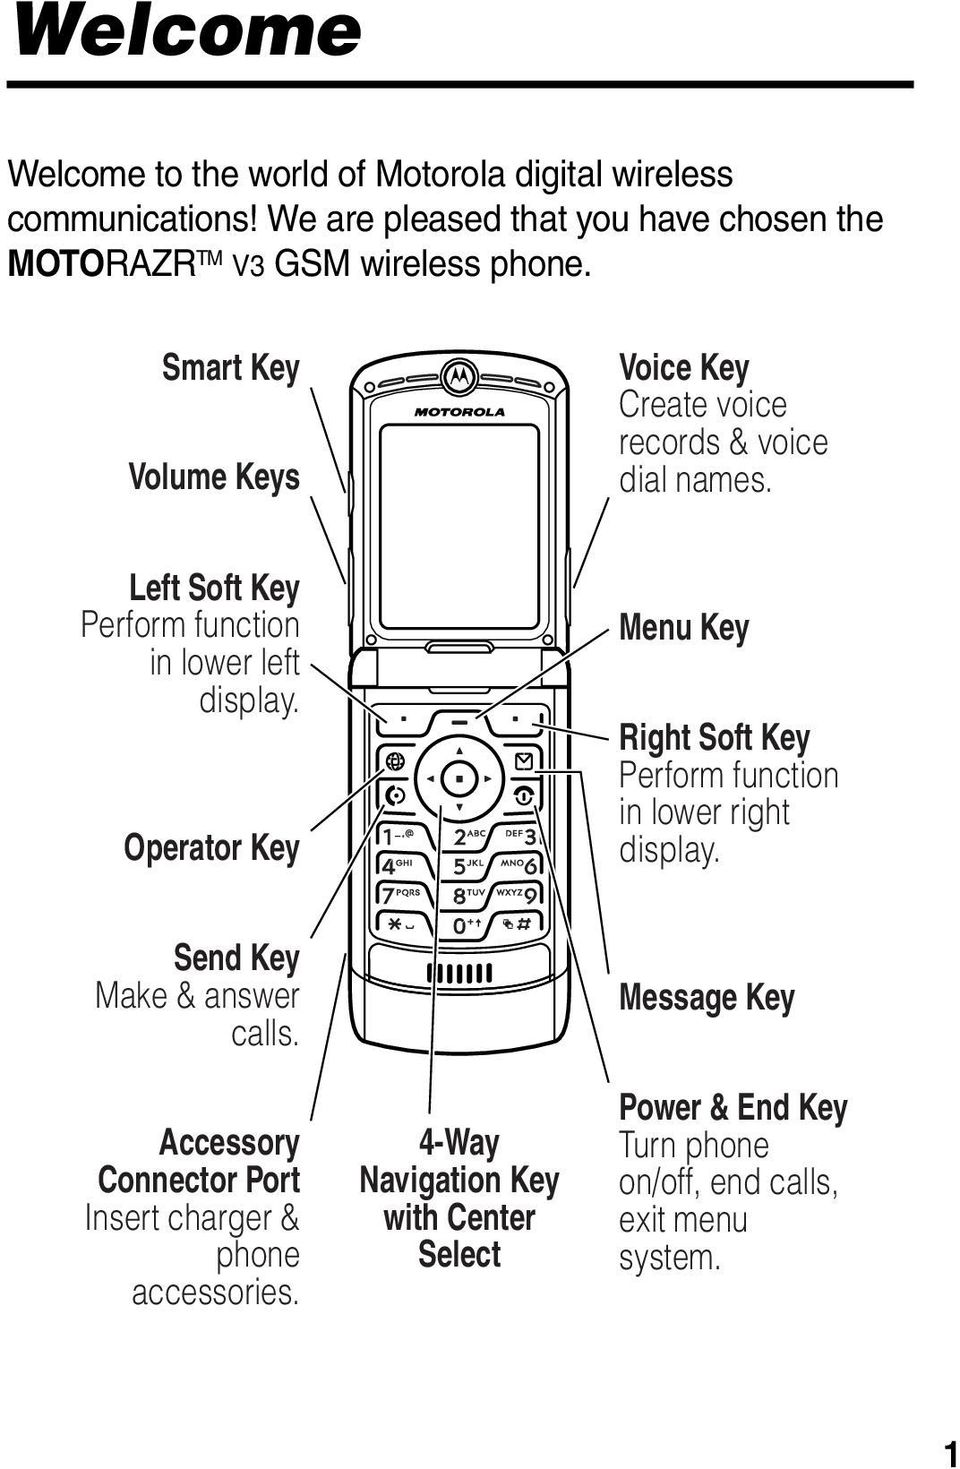 Smart Key Volume Keys Voice Key Create voice records & voice dial names. Left Soft Key Perform function in lower left display.